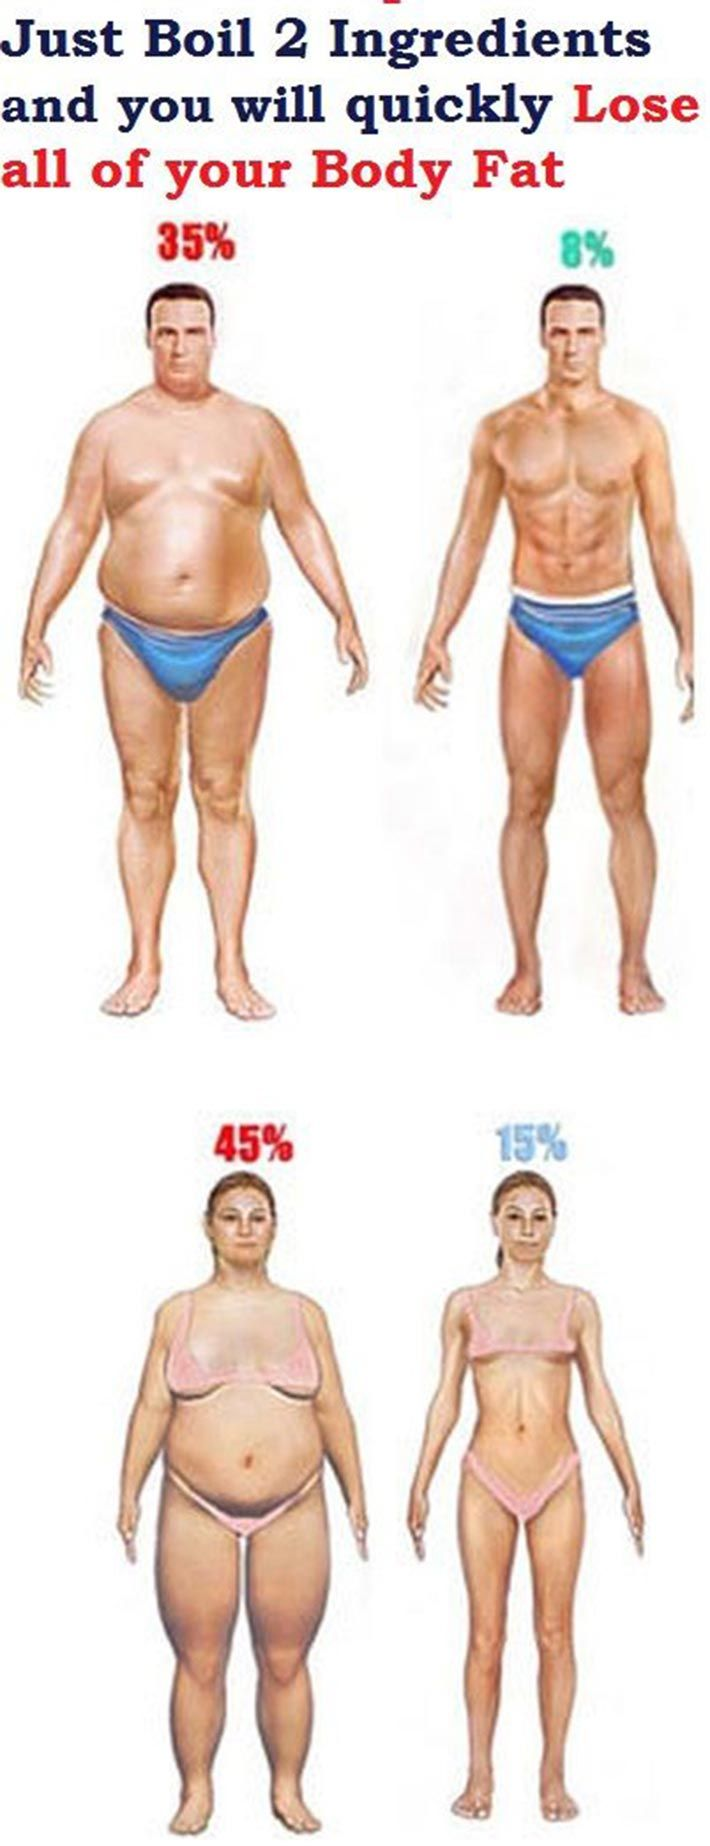 How to Lose Body Fat (Women) recommendations